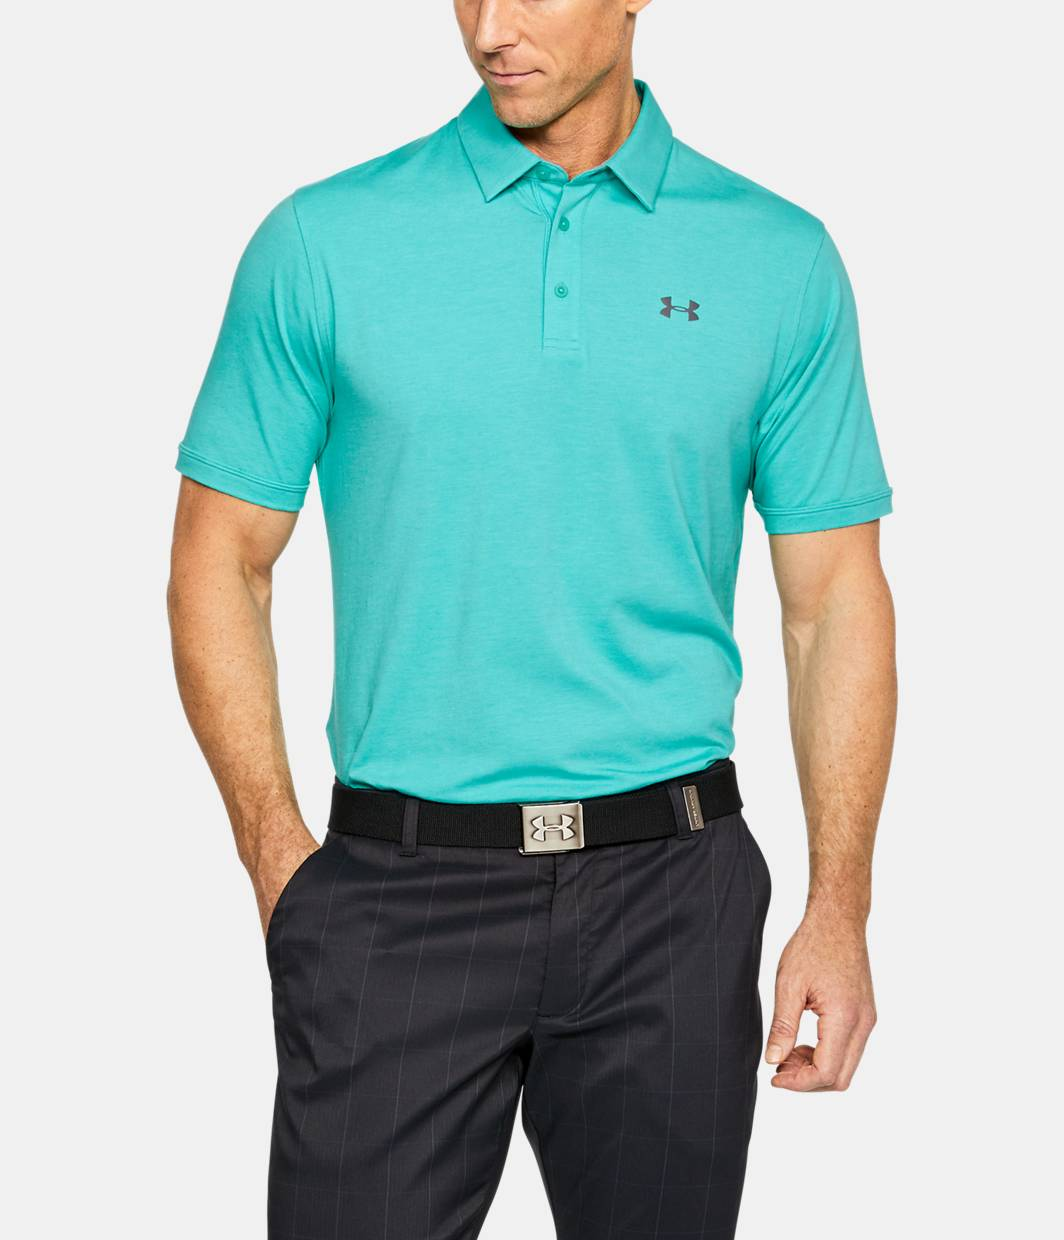 Men 39 s charged cotton scramble polo under armour us for Teal under armour shirt